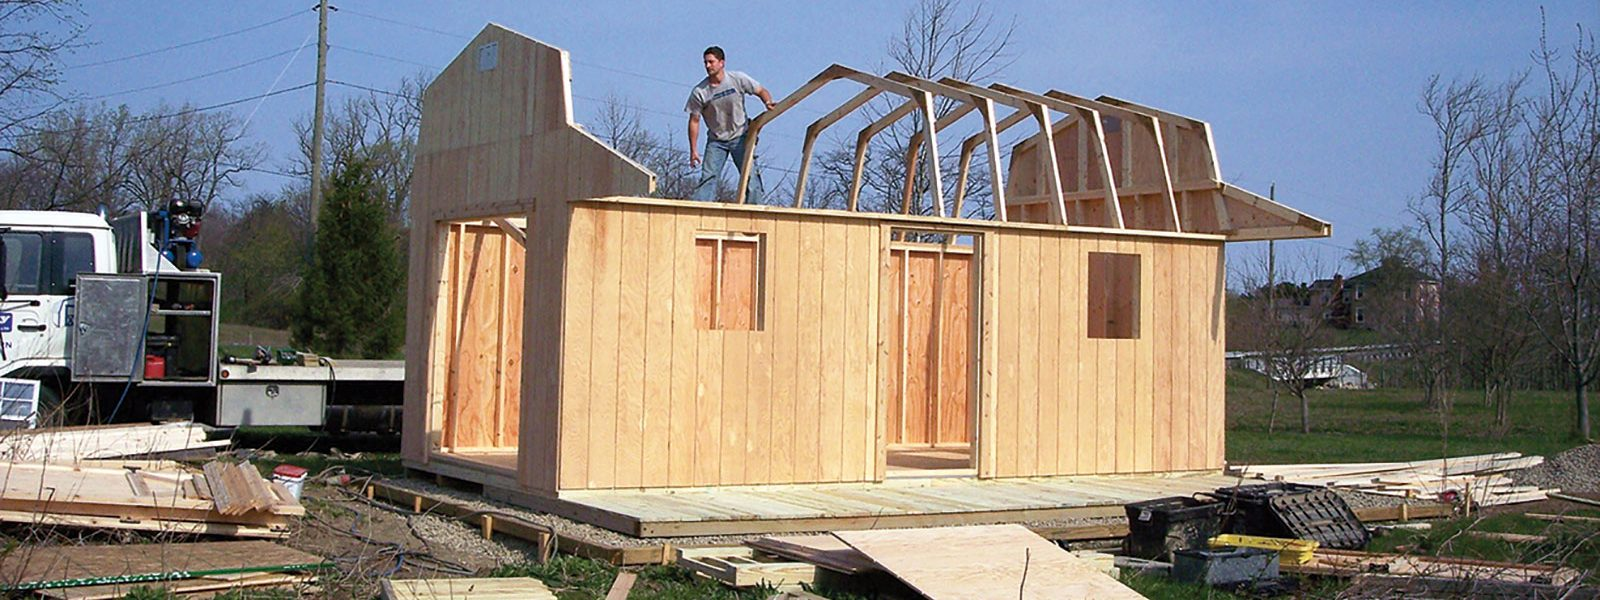 We Build Sheds On Site | Get Your Custom Built Shed Today!